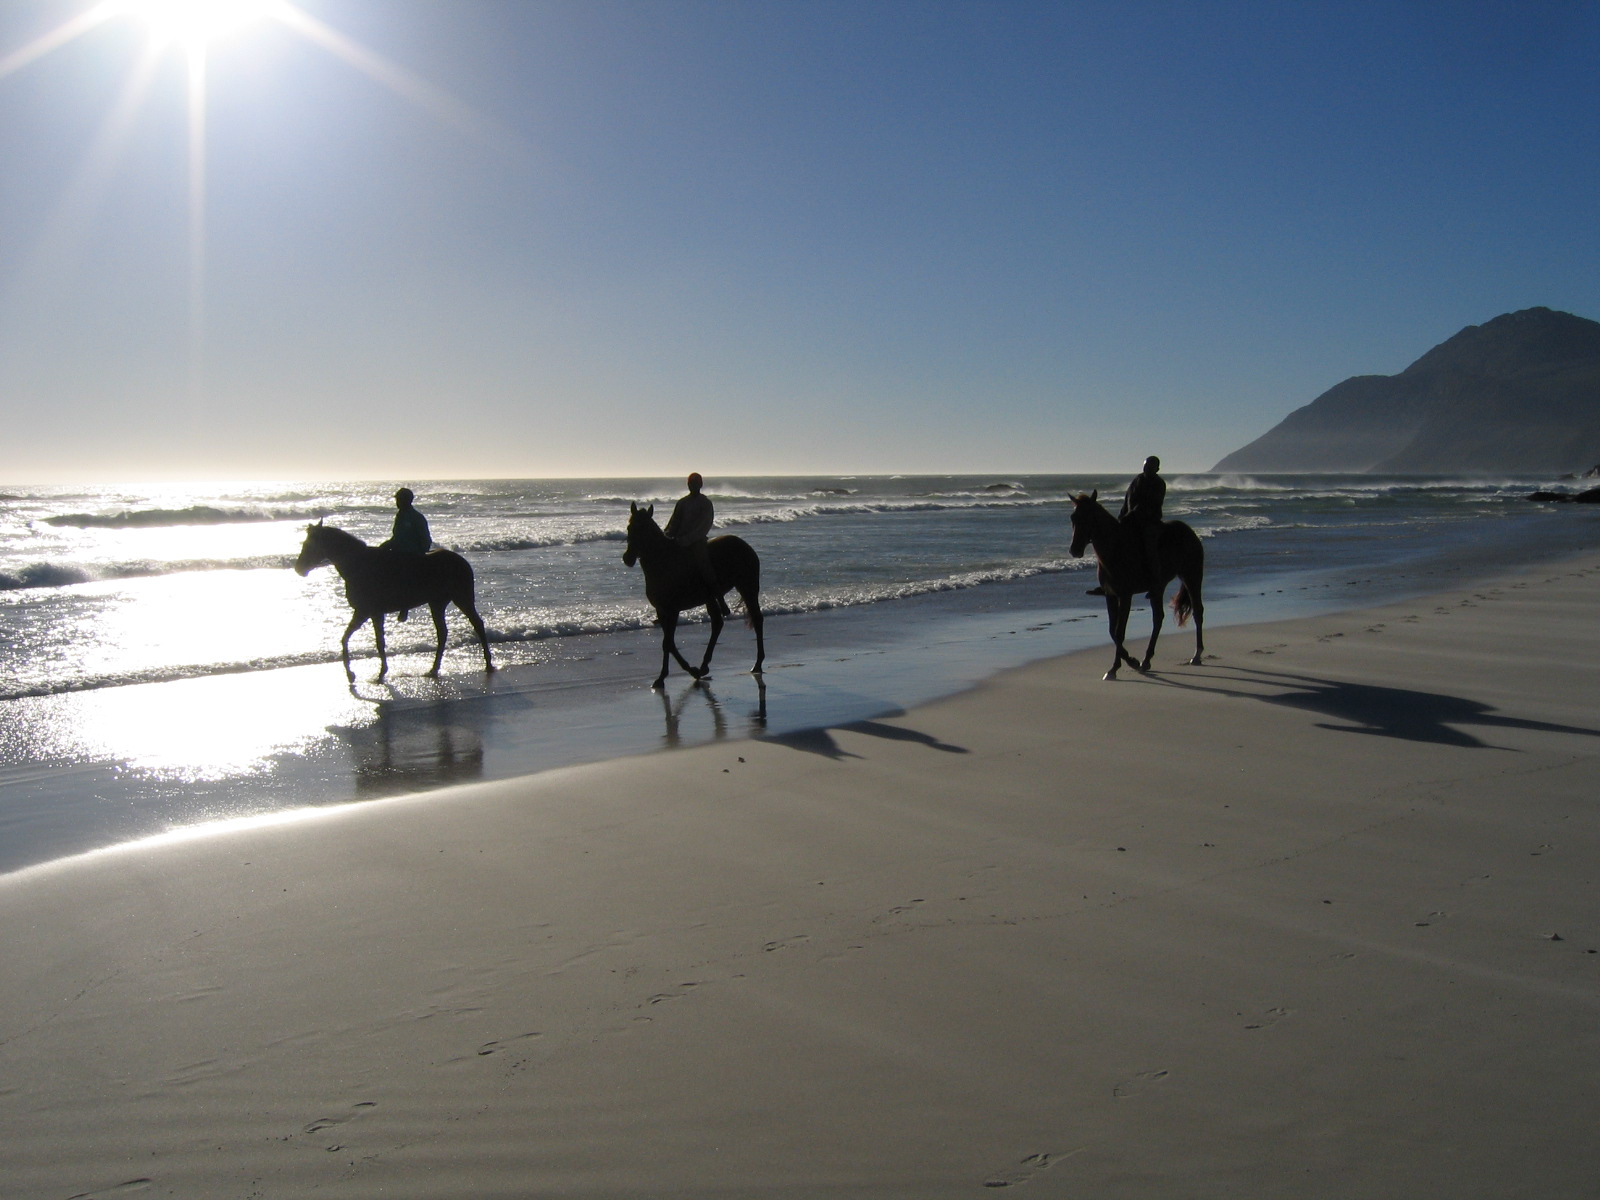 Horse Riding Noordhoek Beach Cape Town South Africa